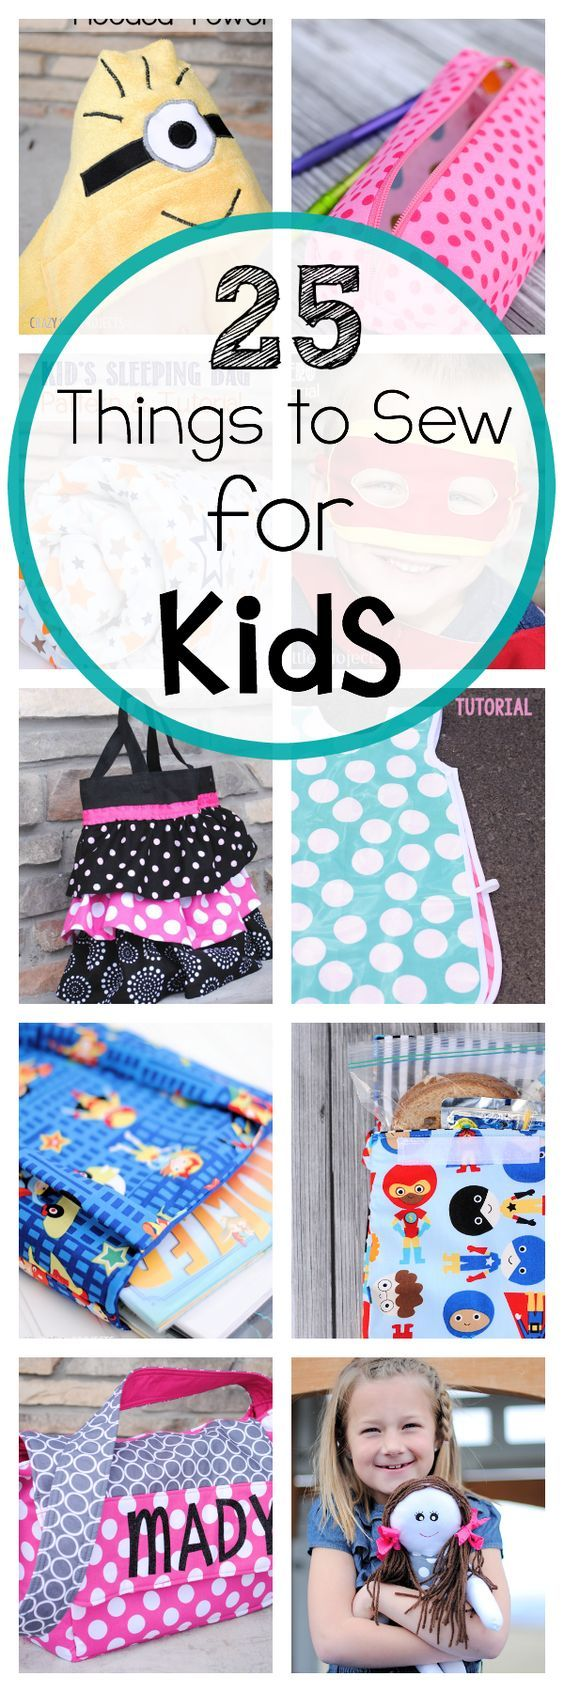 The Mediterranean Sewing: 25 Things to Sew for Kids